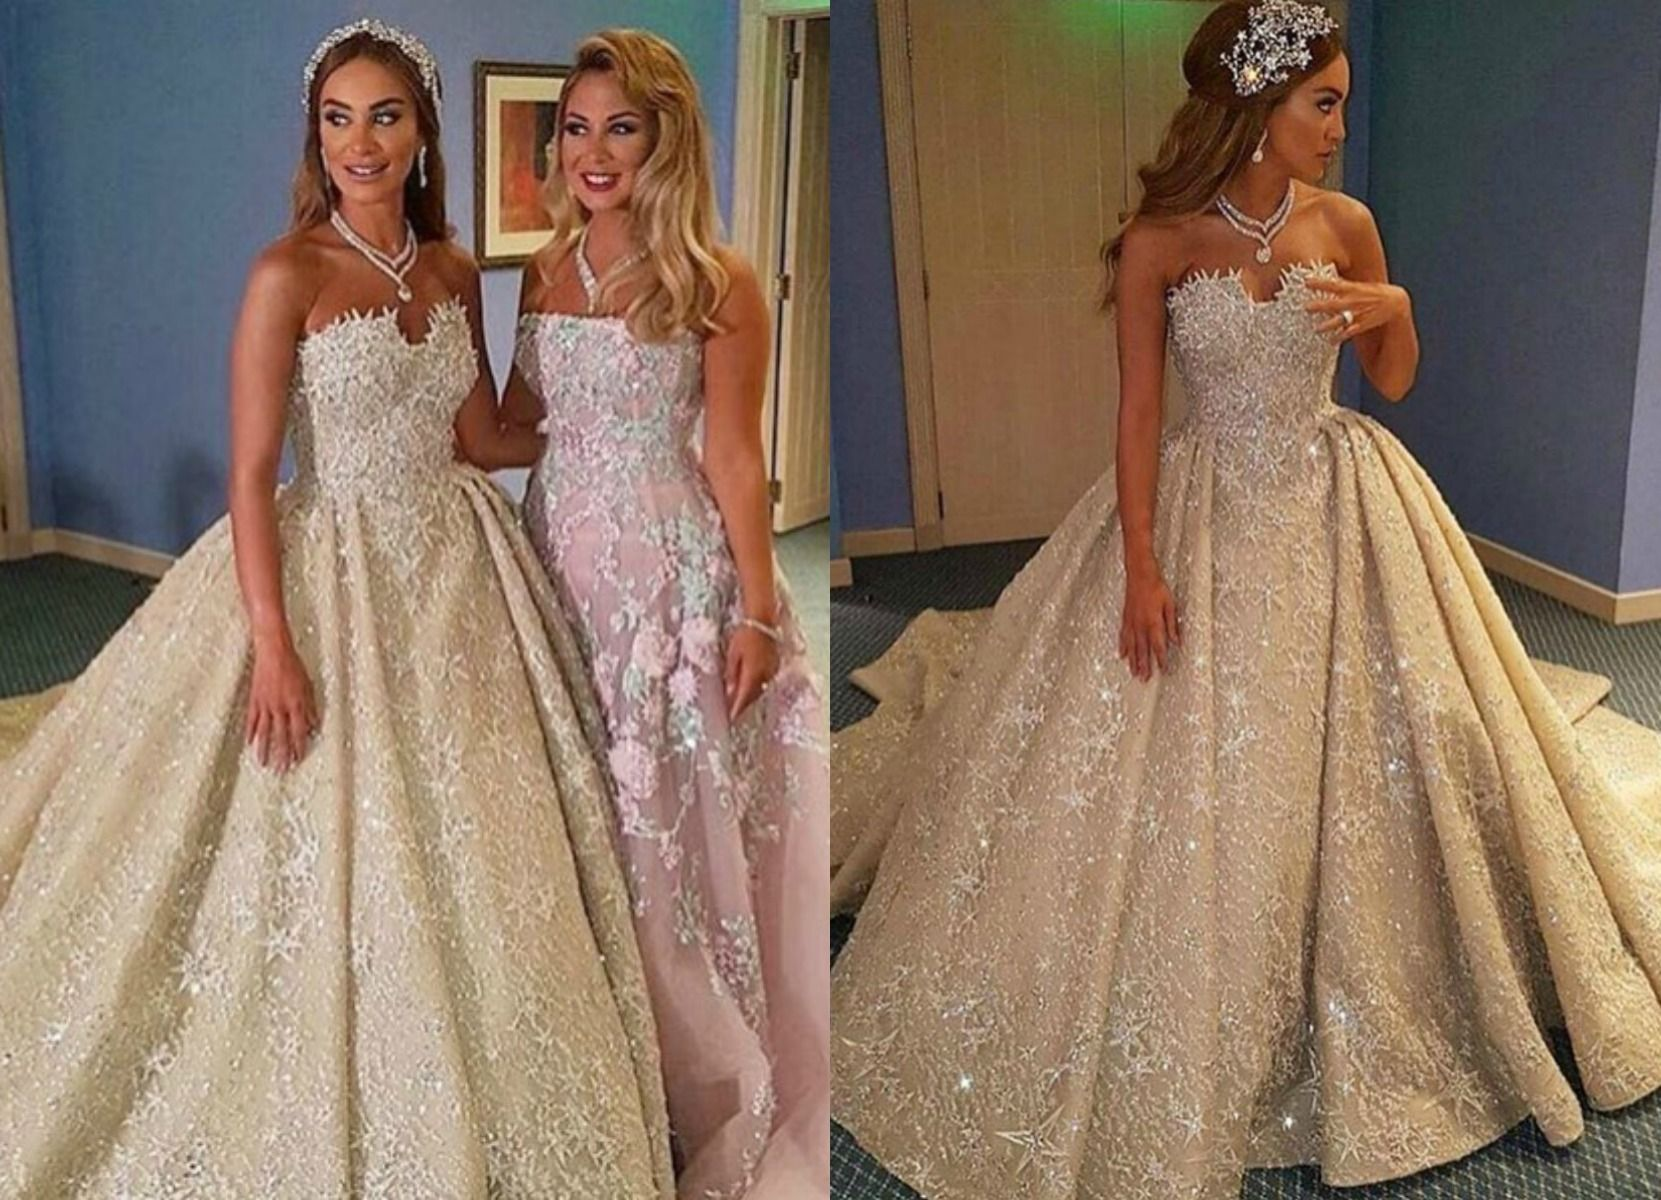 Yasmina And Badwi S Wedding Was An Extravagant Utterly Royal Affair Held At The Hilton Beirut With Over 800 Guests Some Of Lebanon Most